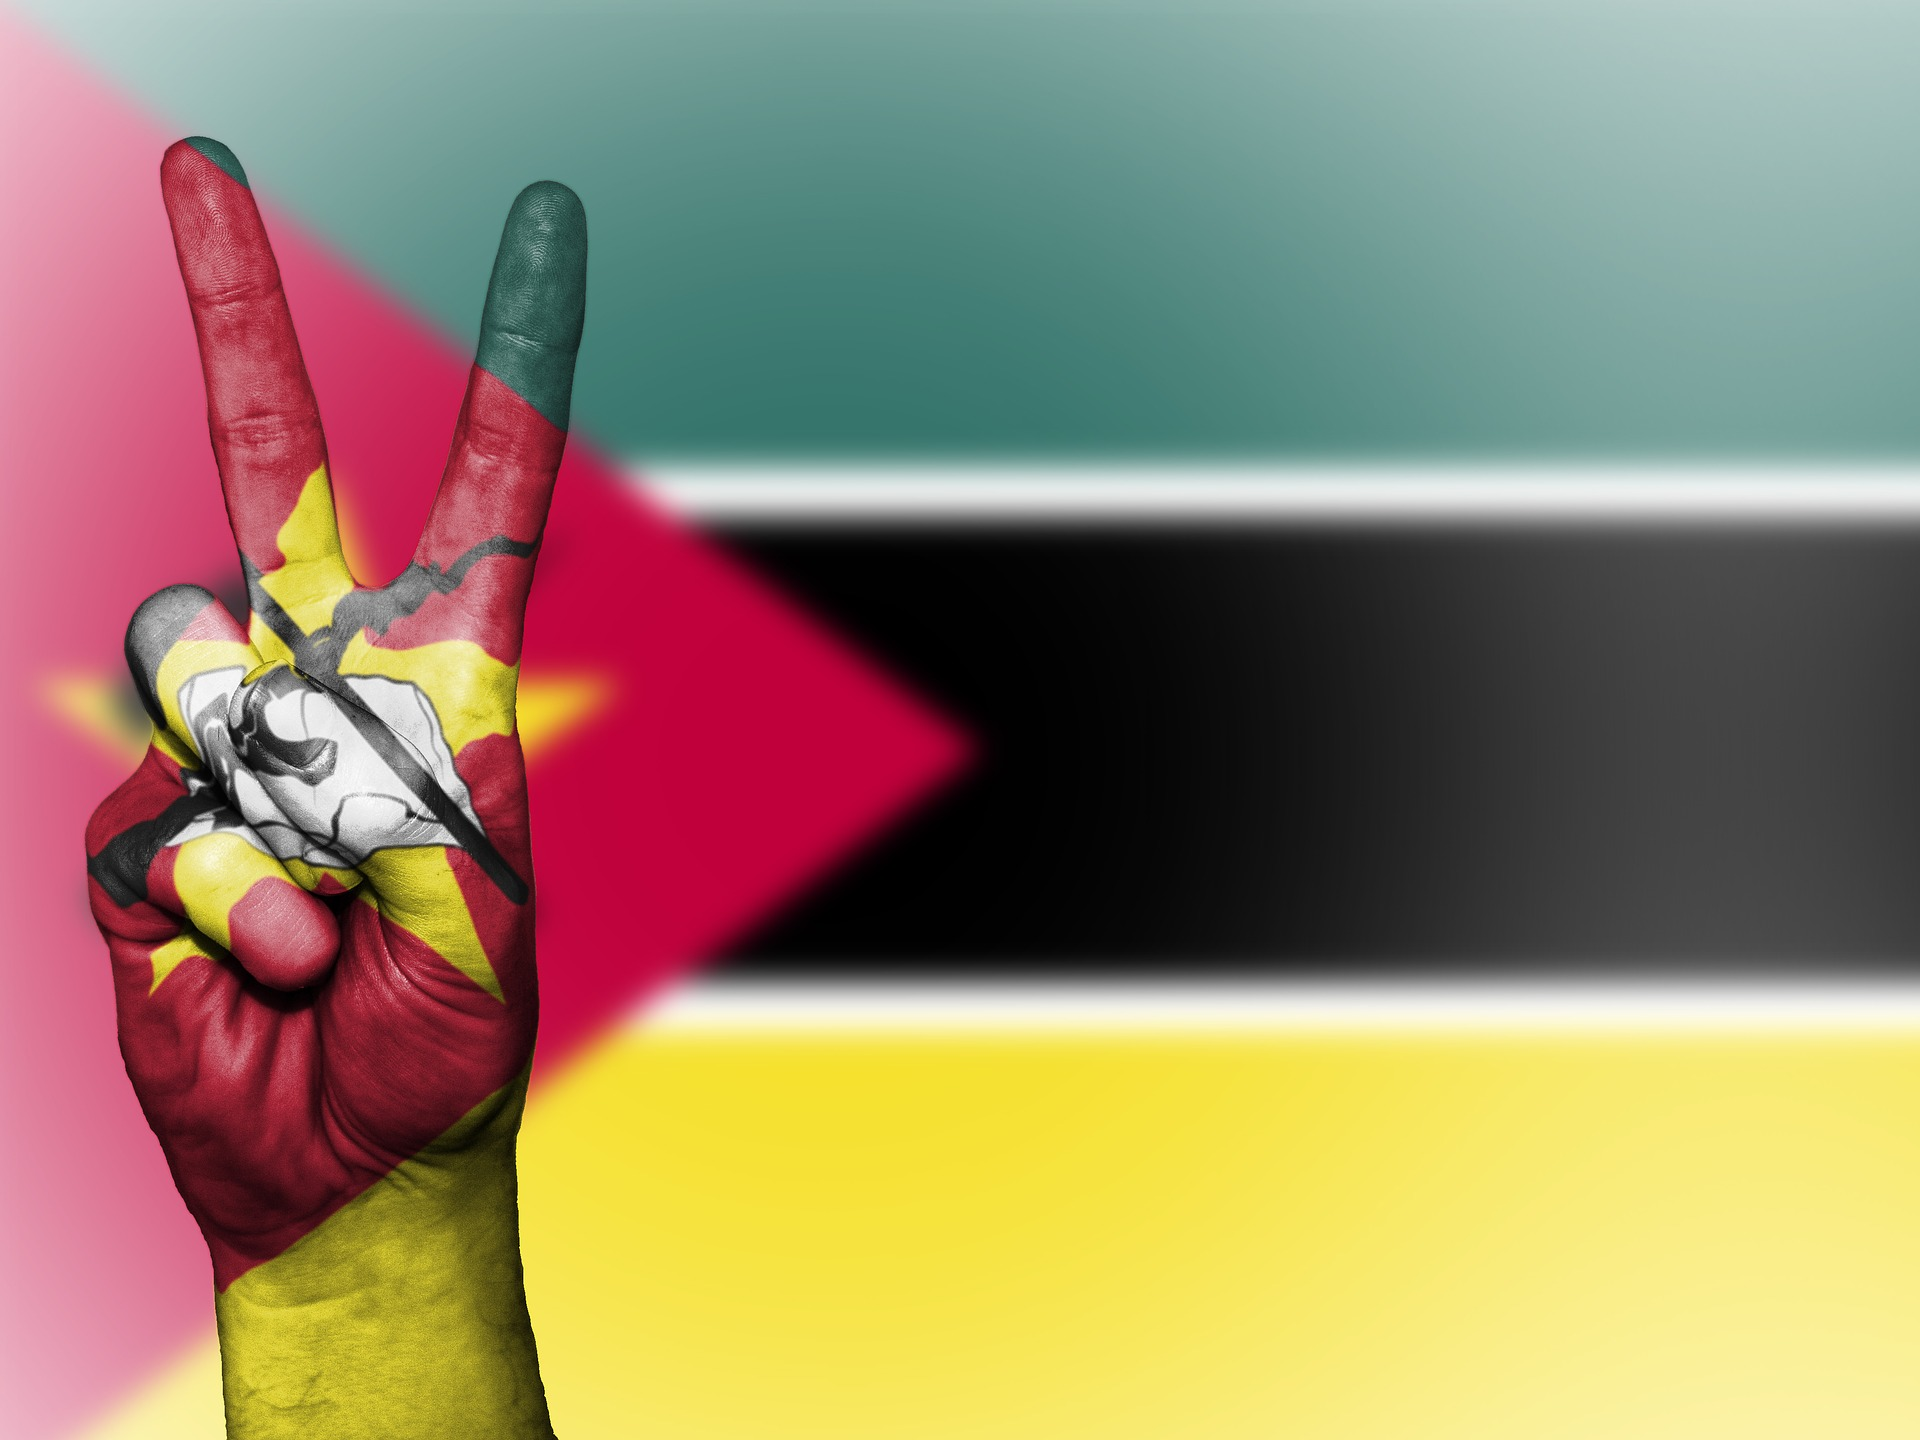 Mozambique's rising extremist violence poses regional threat